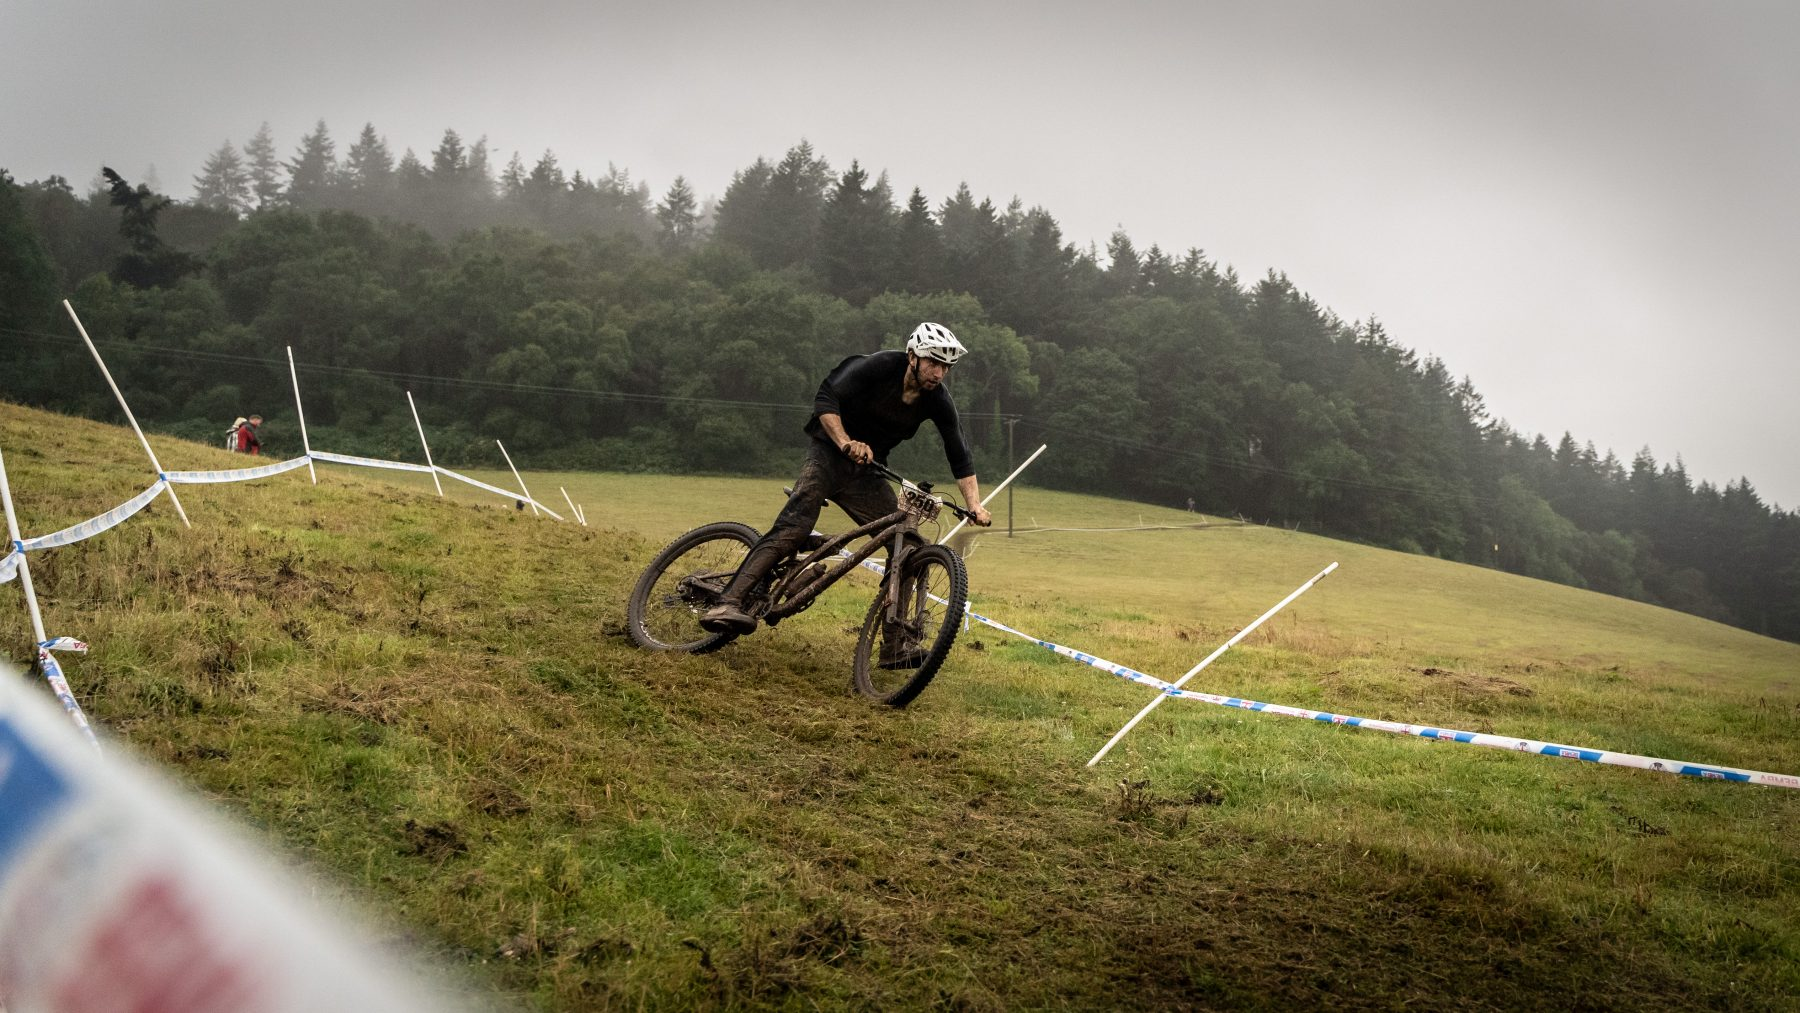 Southern Enduro Update 27/07/20 – The Event is on with a venue swap.